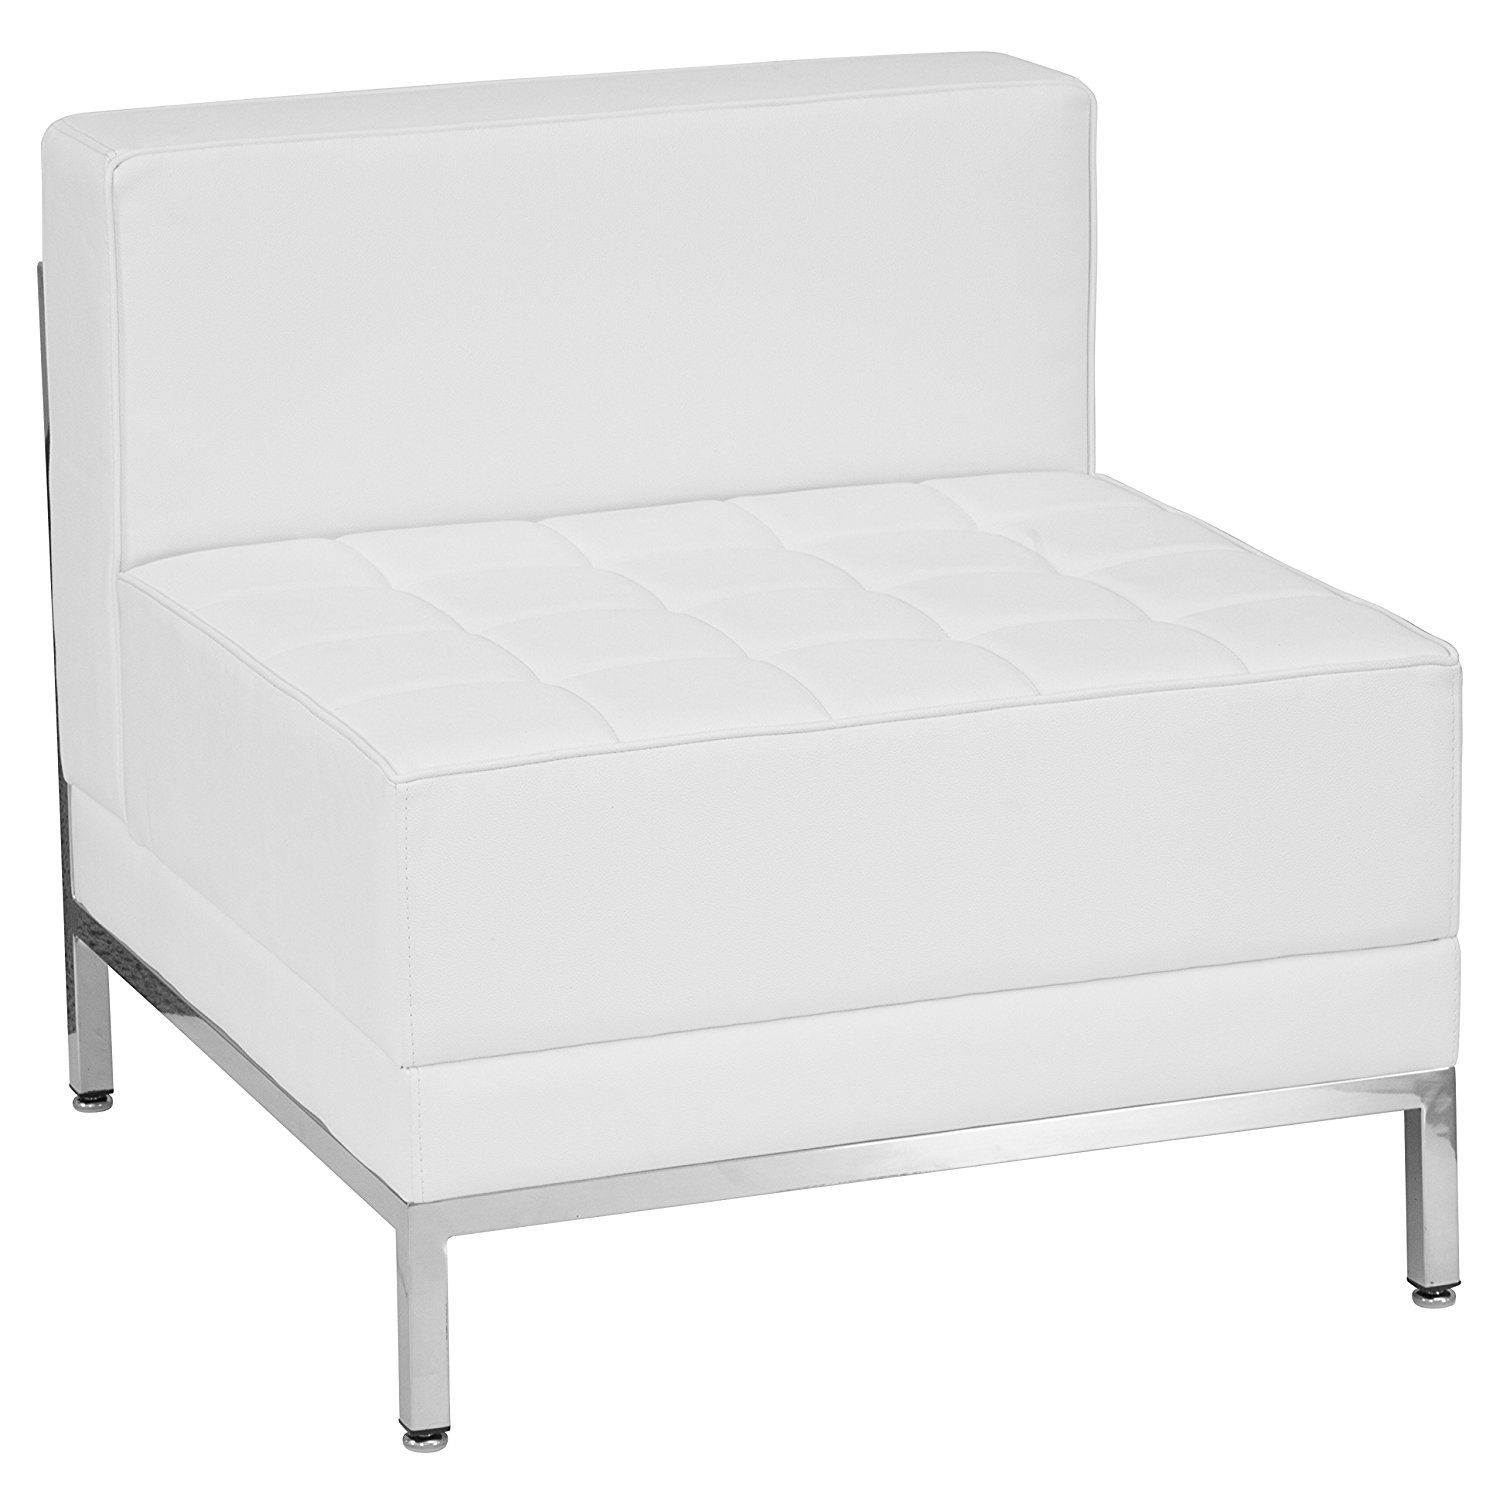 White leather reception lounge sofa sectional section chair tufted